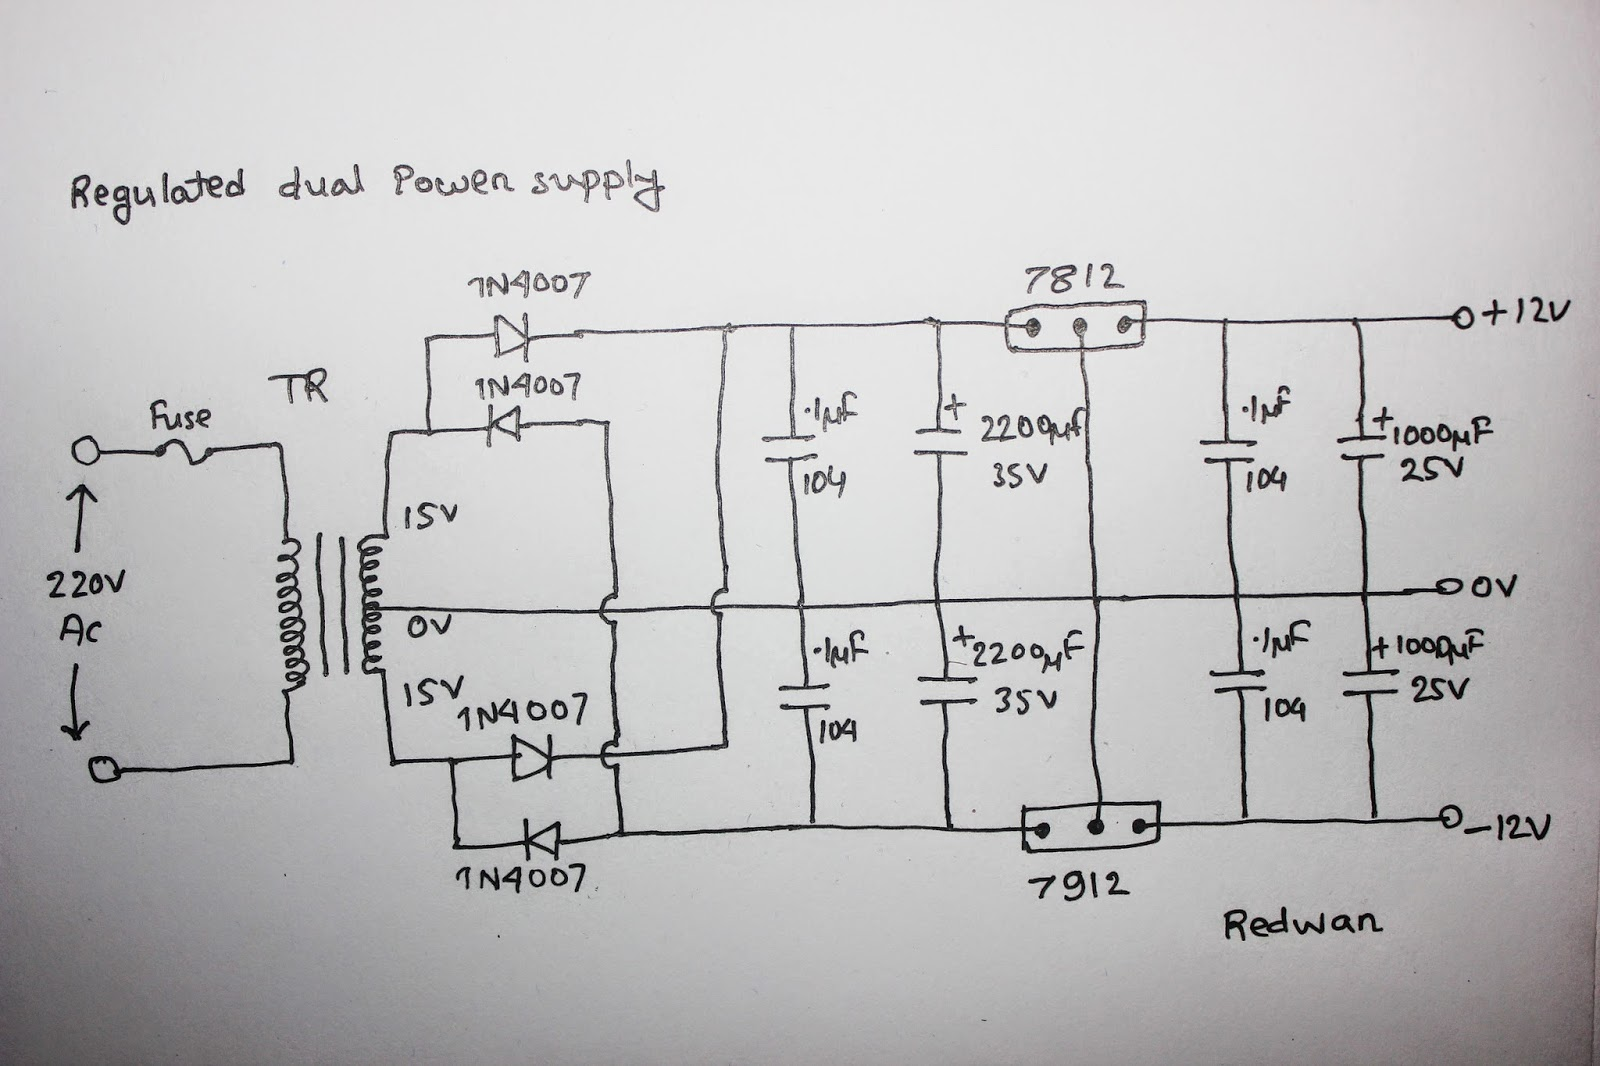 Circuit Diagram Of Center Tap Transformer 220v Wiring Scavengers Blog Dual Power Supply